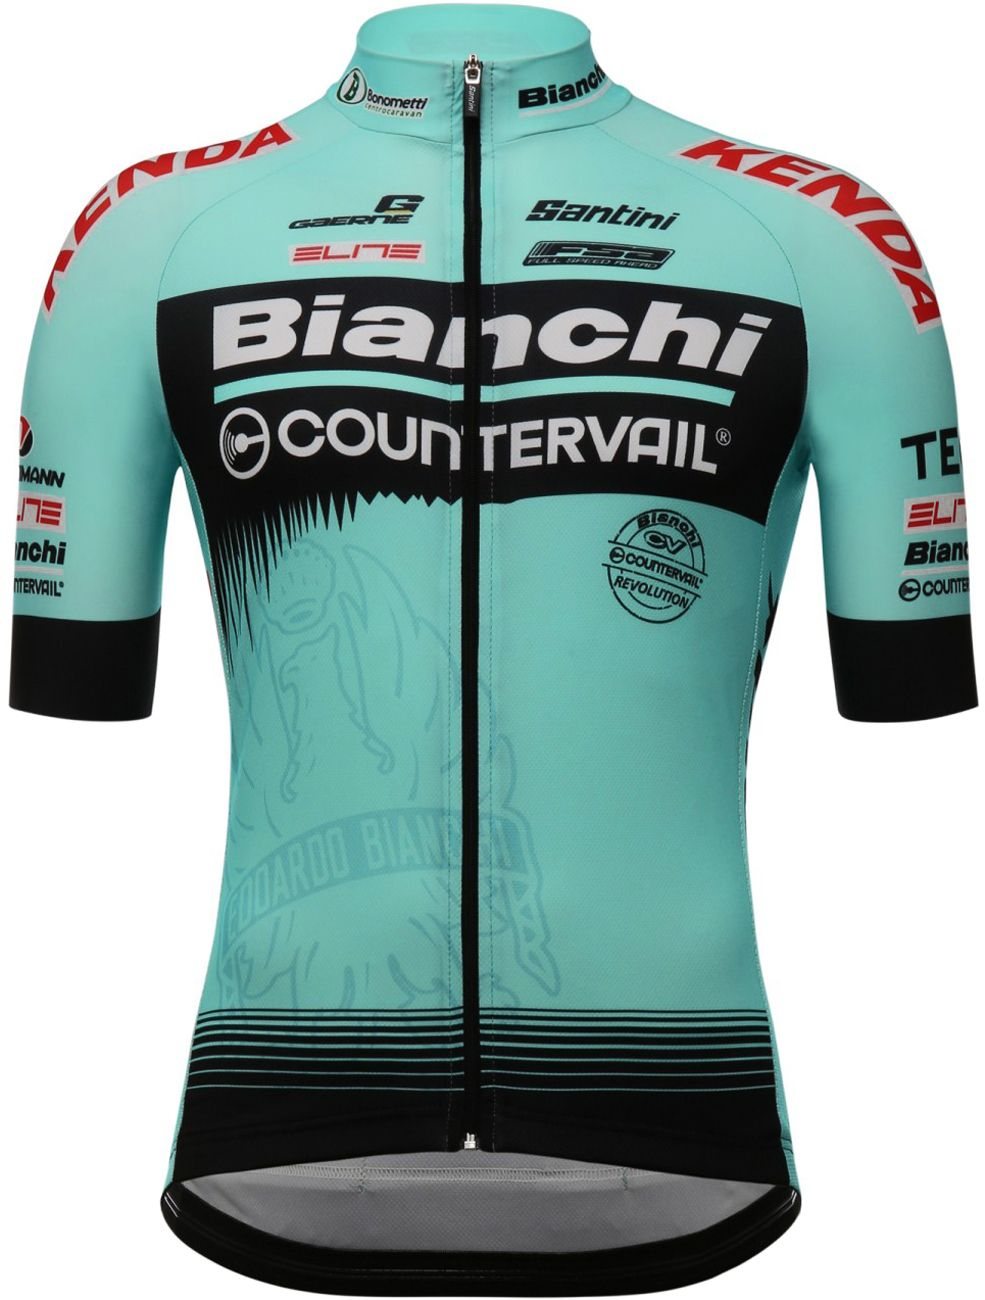 Bianchi Countervail 2018 short sleeve cycling jersey - Santini professional cycling  team. Previous 8eedb6241